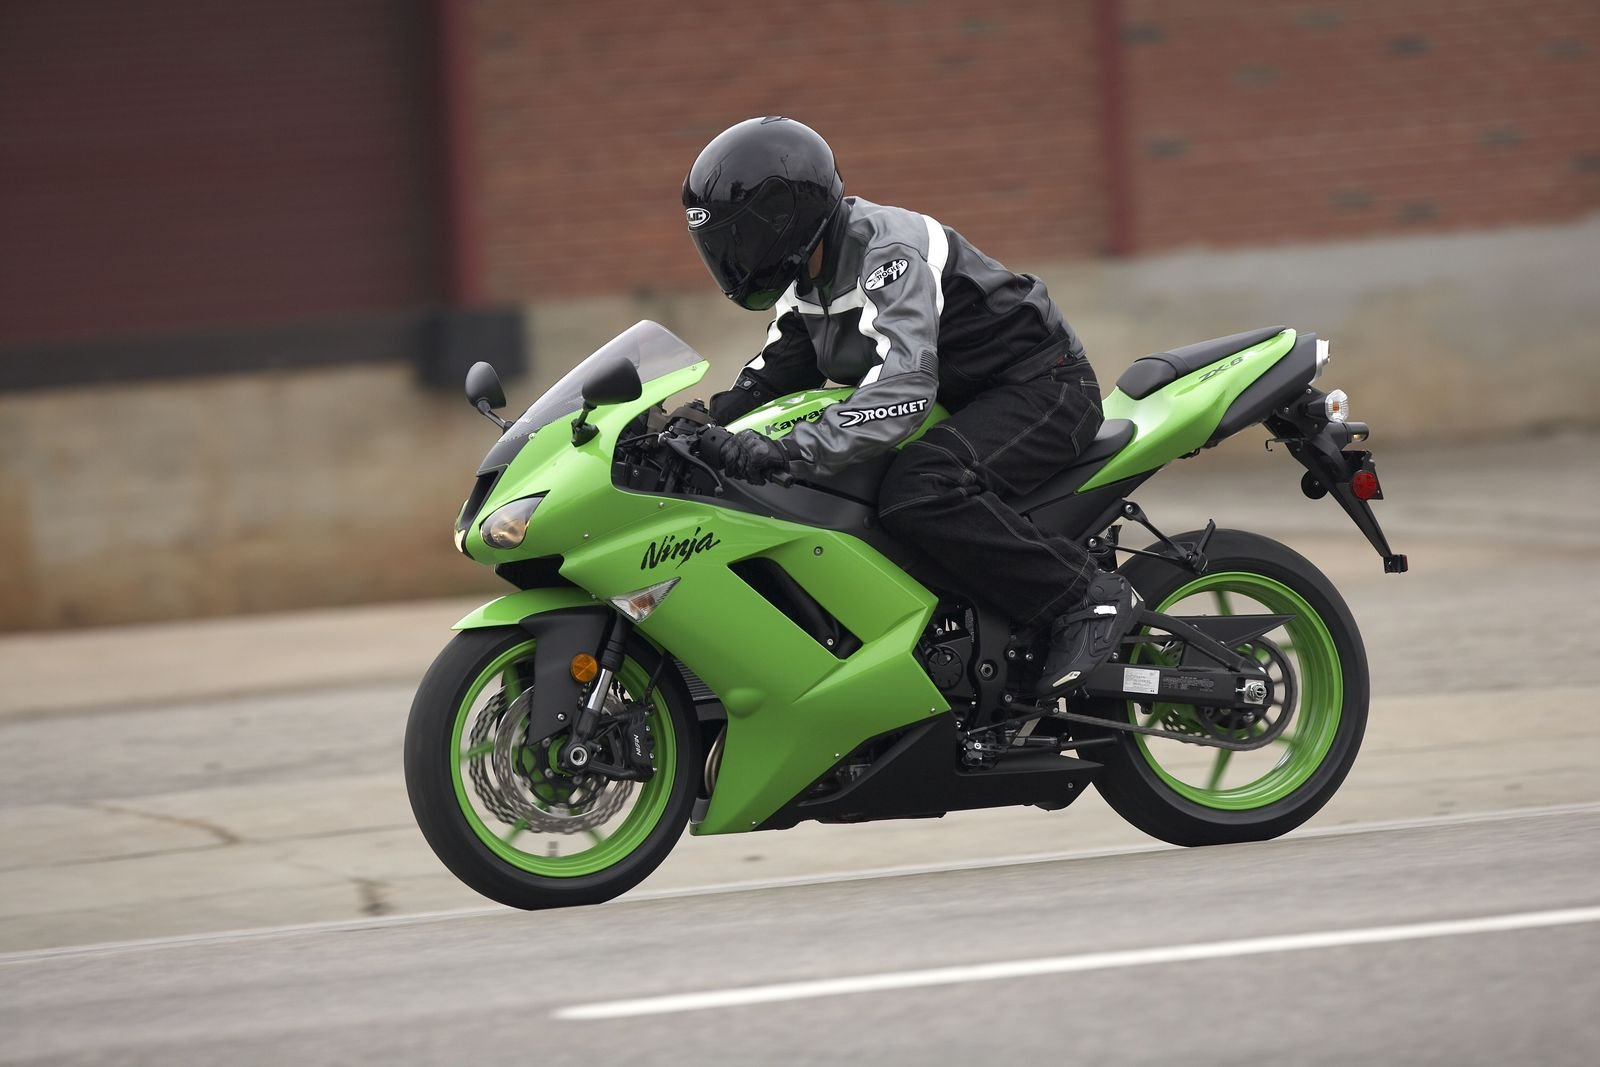 2008 kawasaki ninja zx 6r picture 220741 motorcycle review top speed. Black Bedroom Furniture Sets. Home Design Ideas